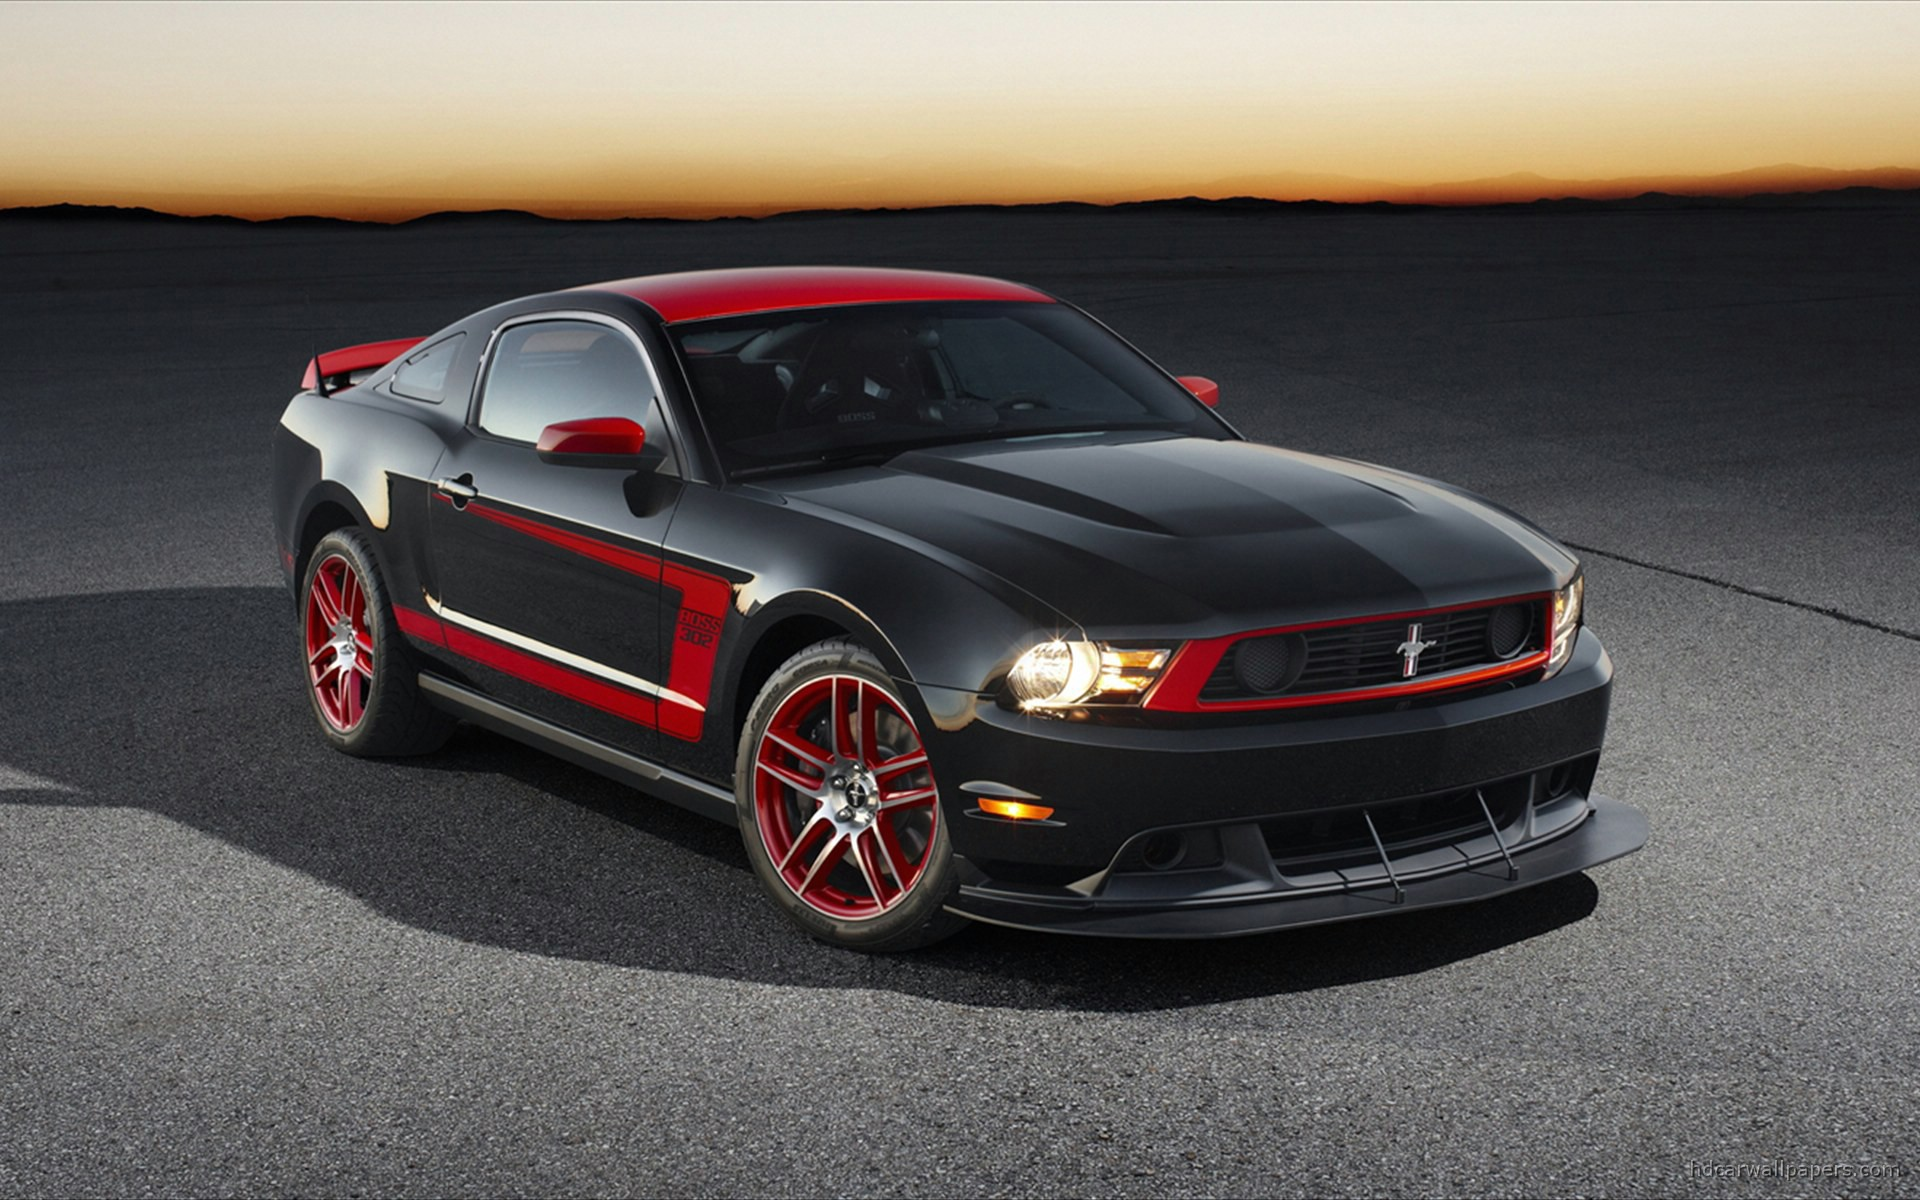 wallpapers screen savers ford screensavers walls mustang 1920x1200